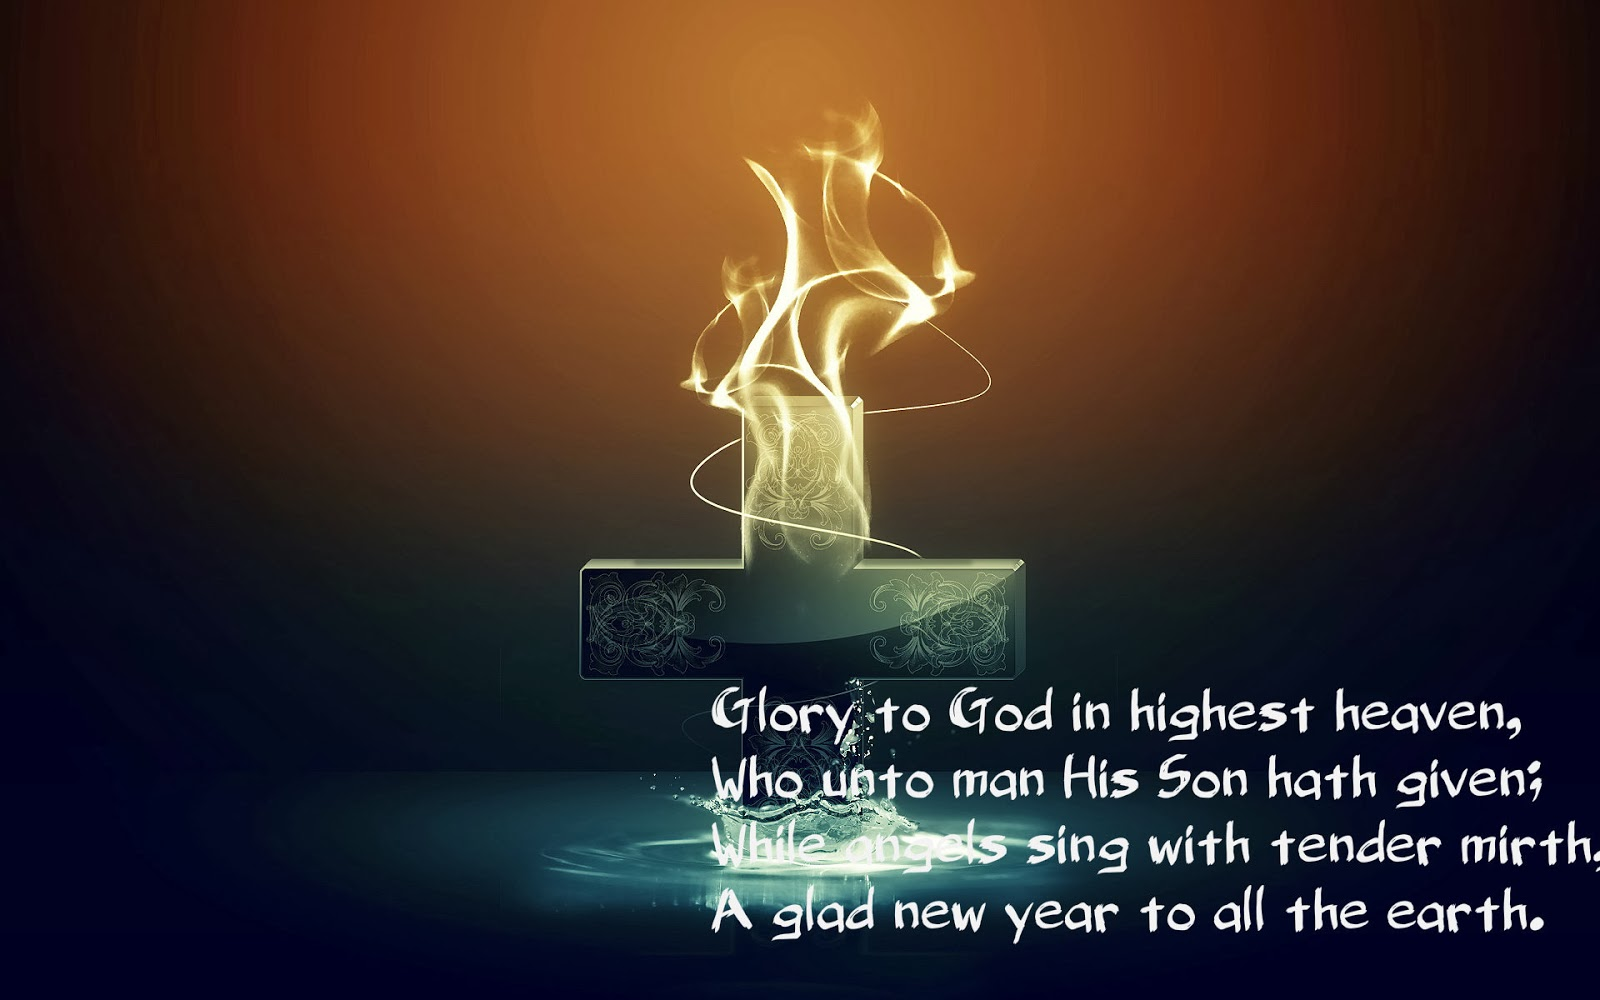 Christian Happy New Year Wishes 2014 SMS Messages Quotes. 1600 x 1000.Christian New Year Greetings Sayings